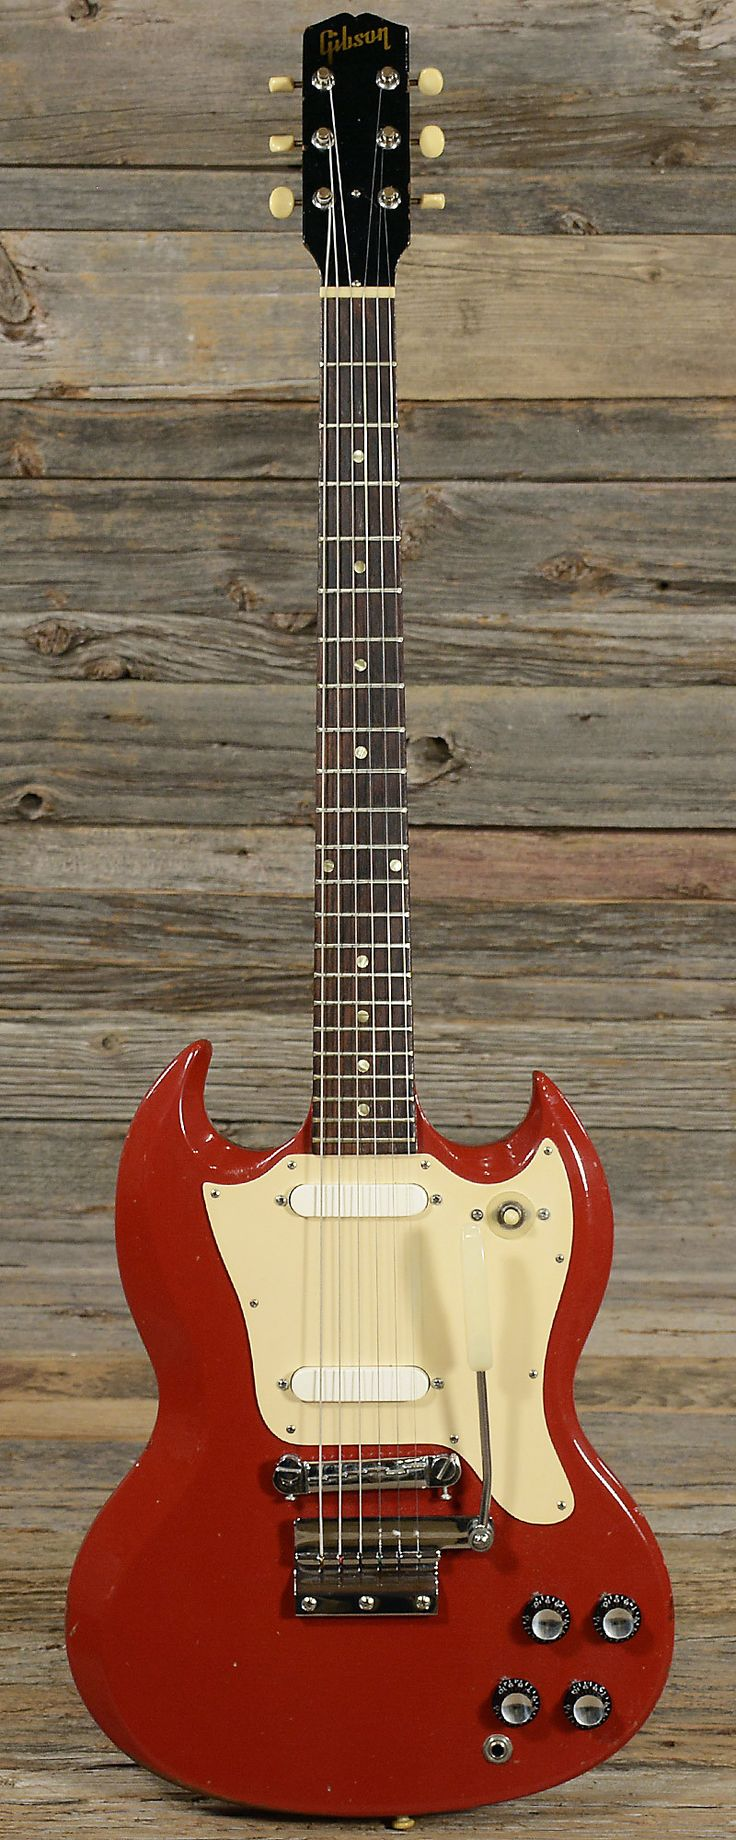 Gibson Melody Maker Fire Engine Red 1966